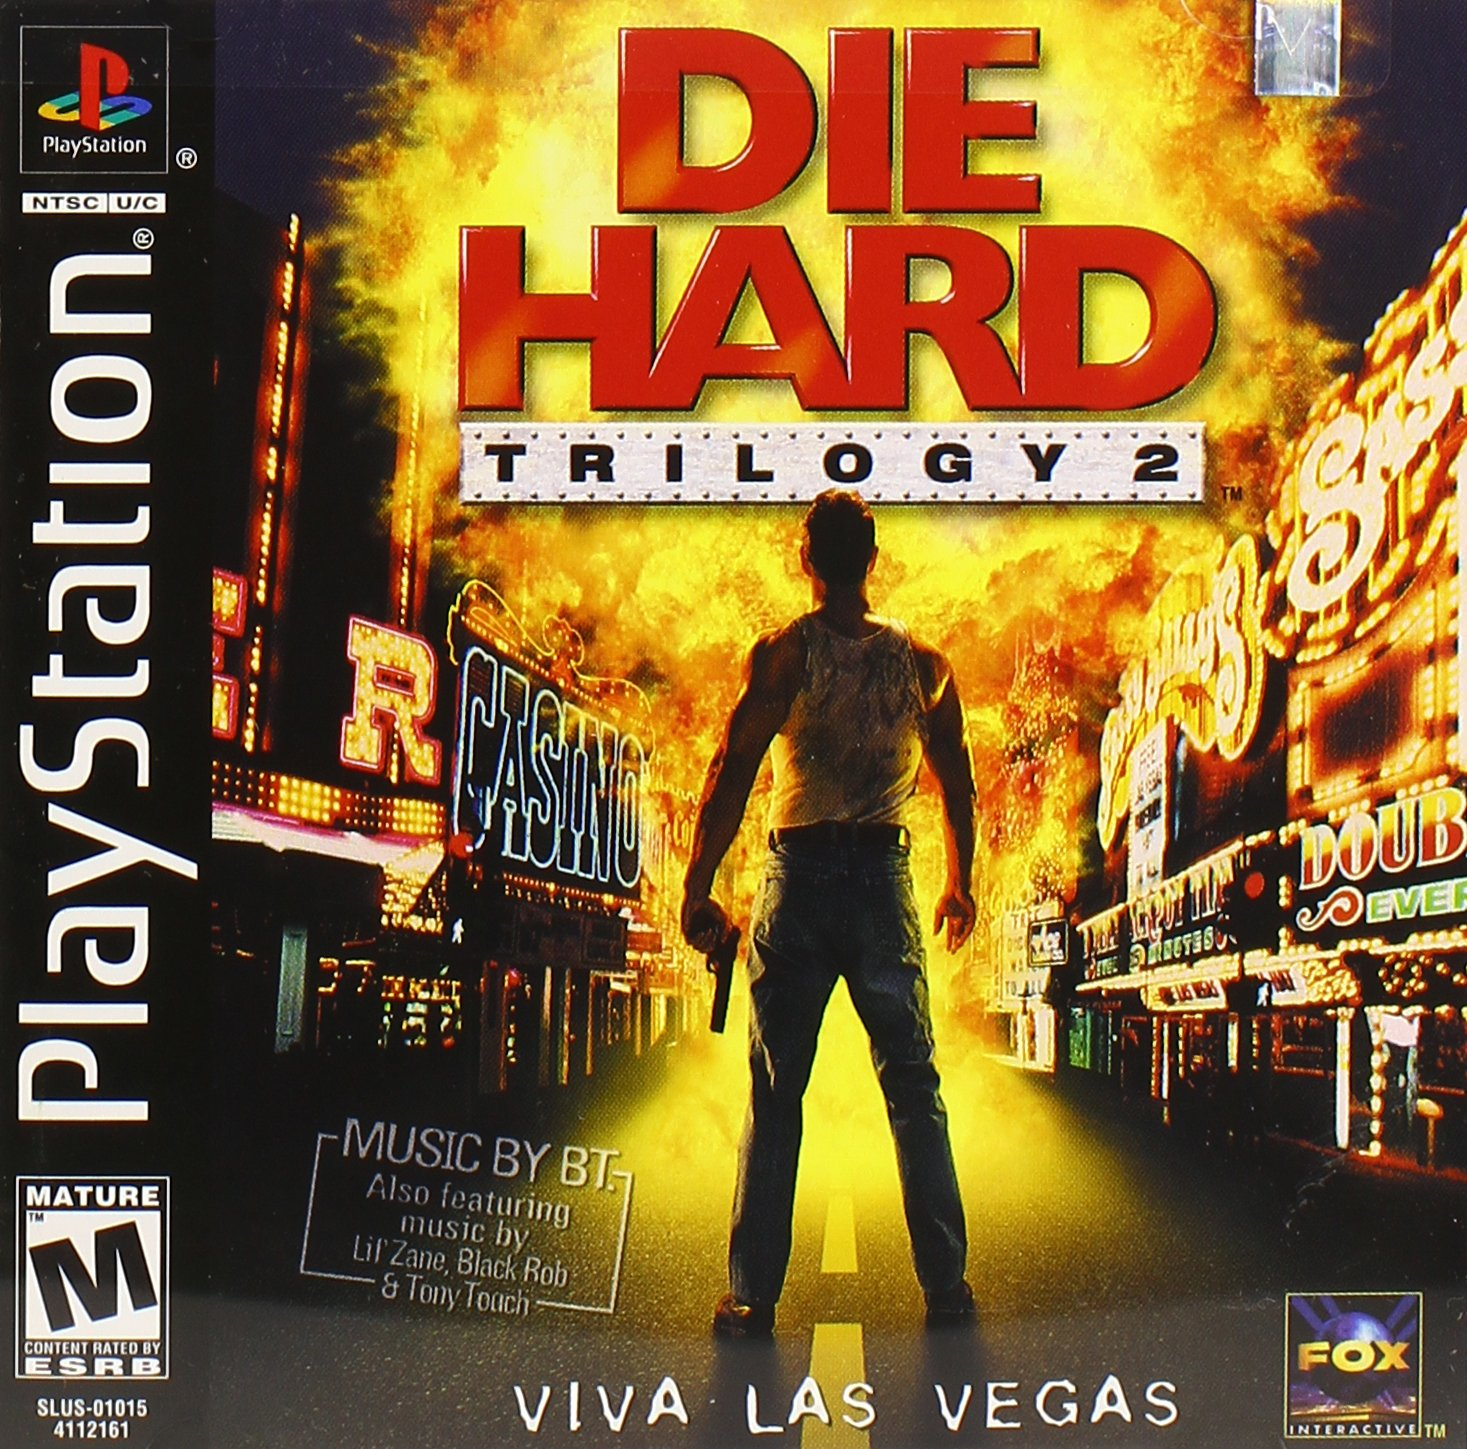 Die Hard Trilogy 2 Viva Las Vegas facts statistics